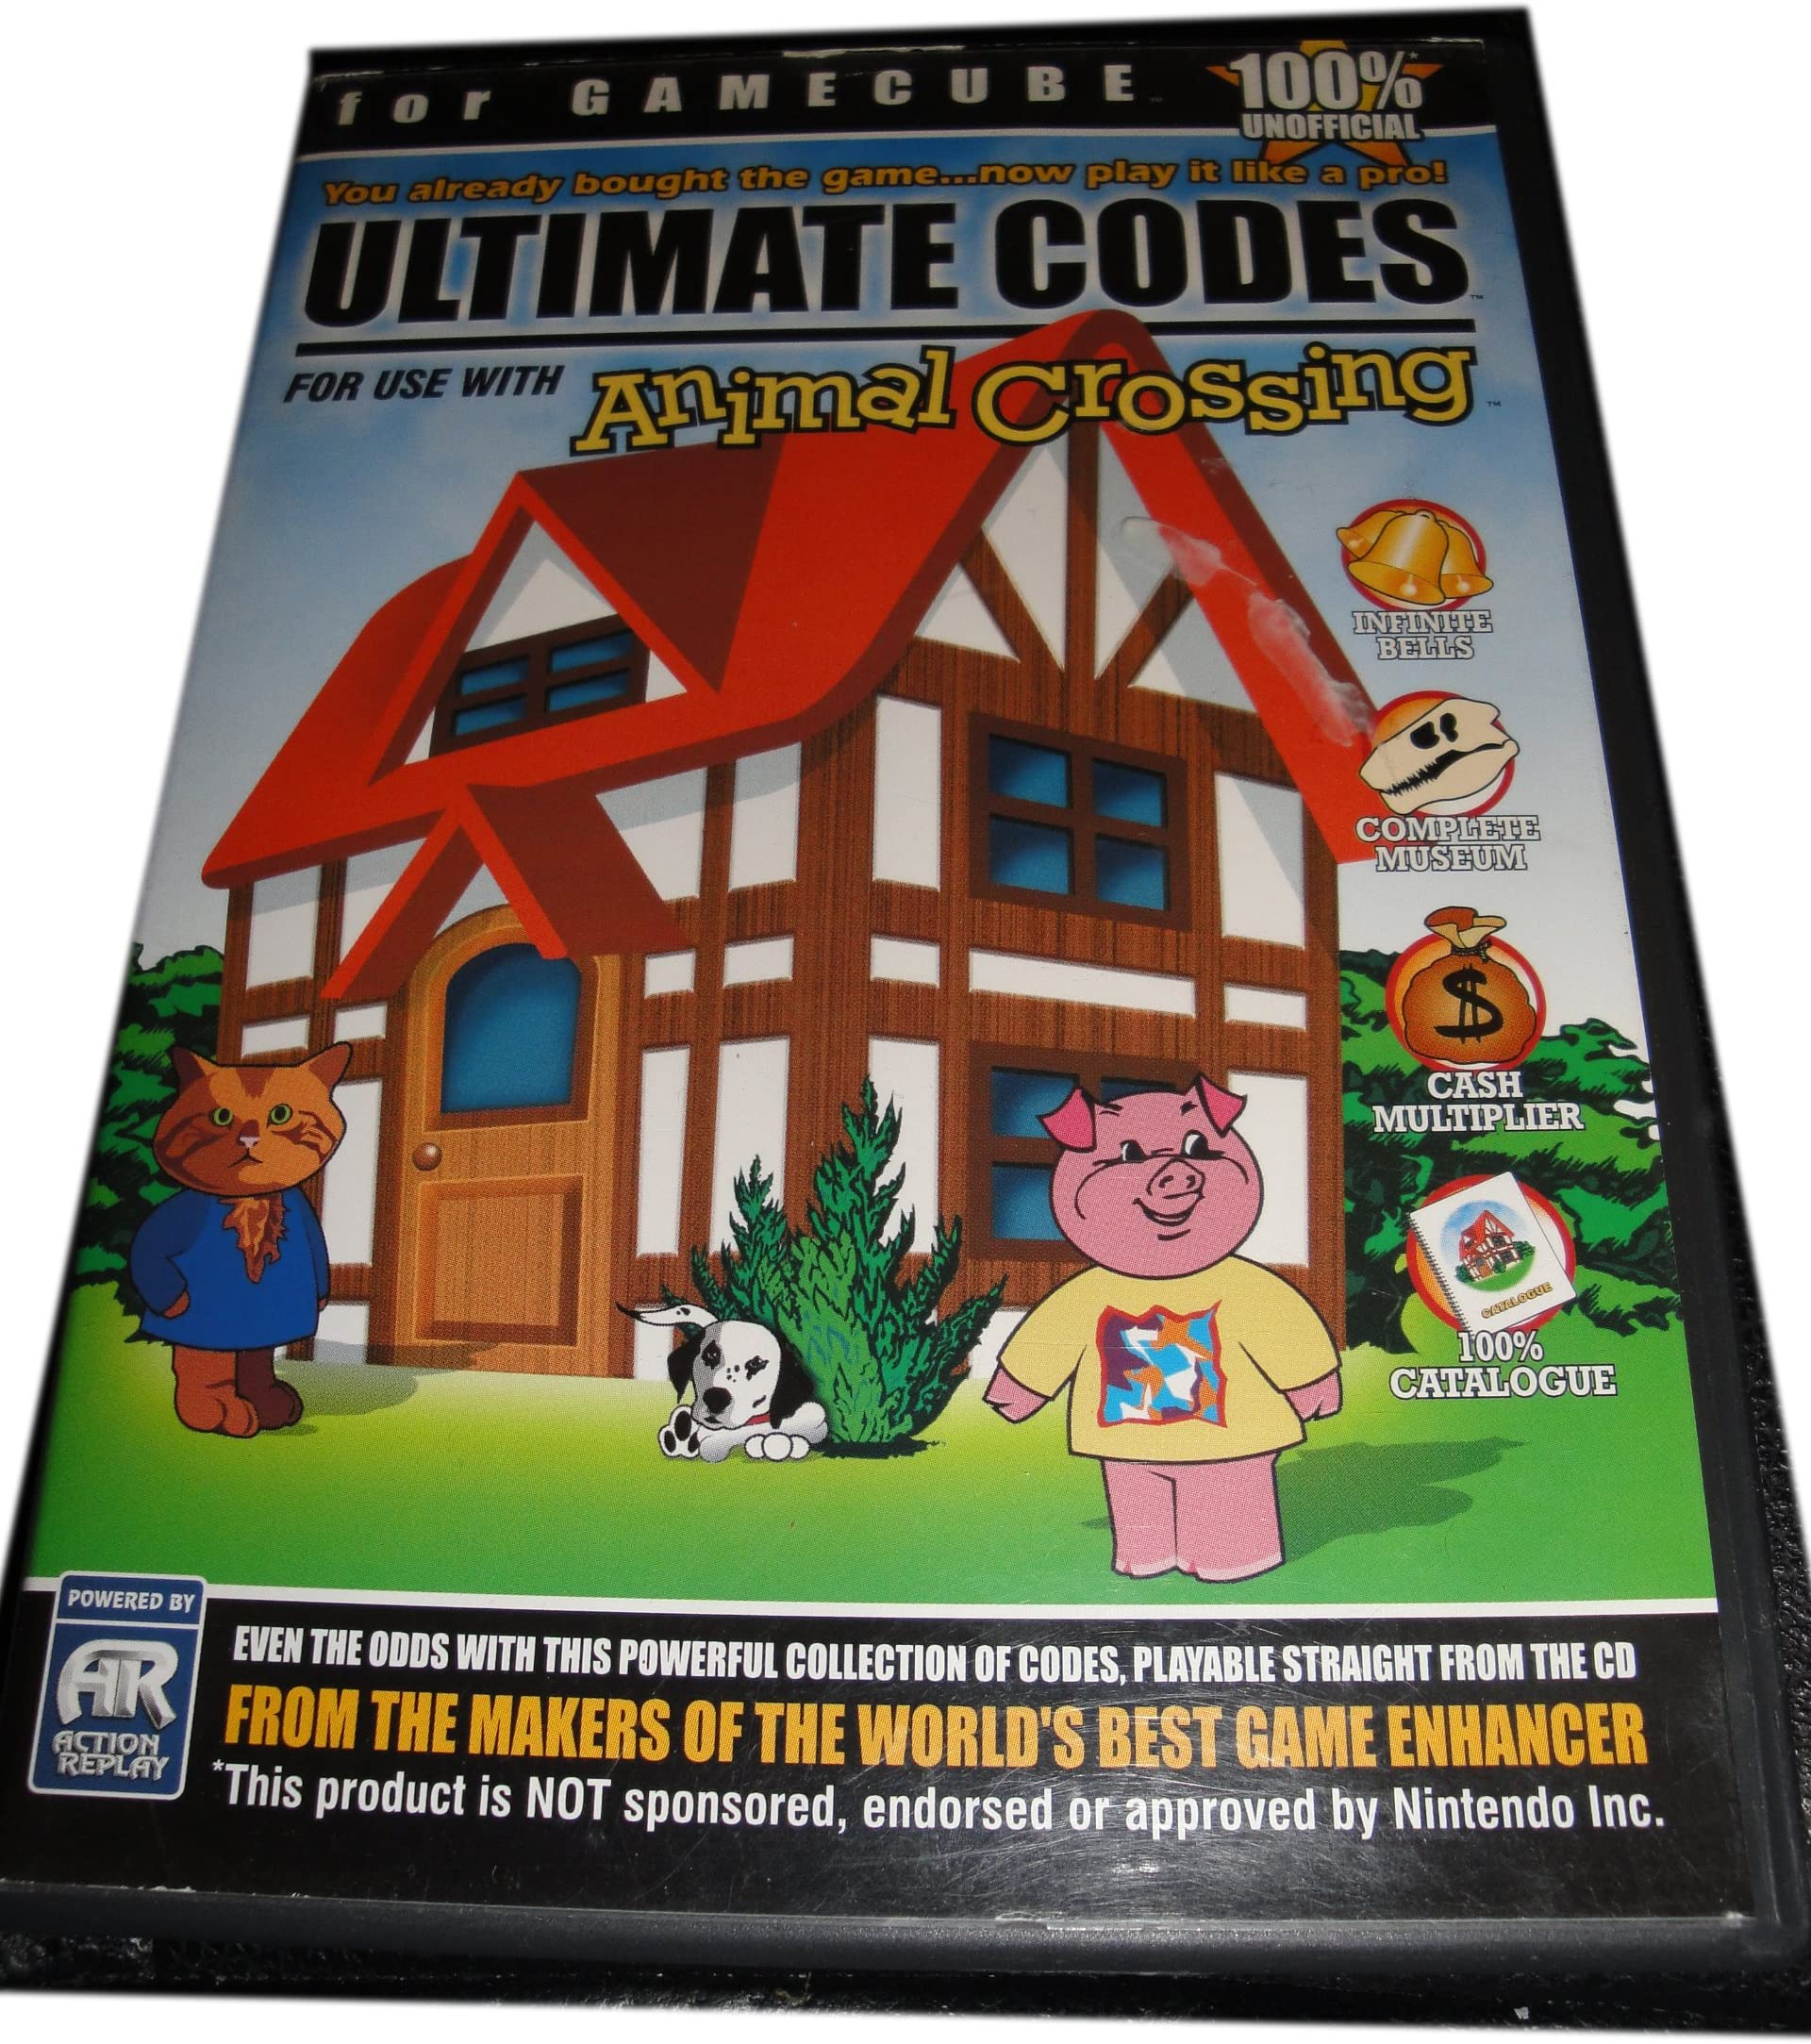 amazon com ultimate codes animal crossing video games image unavailable